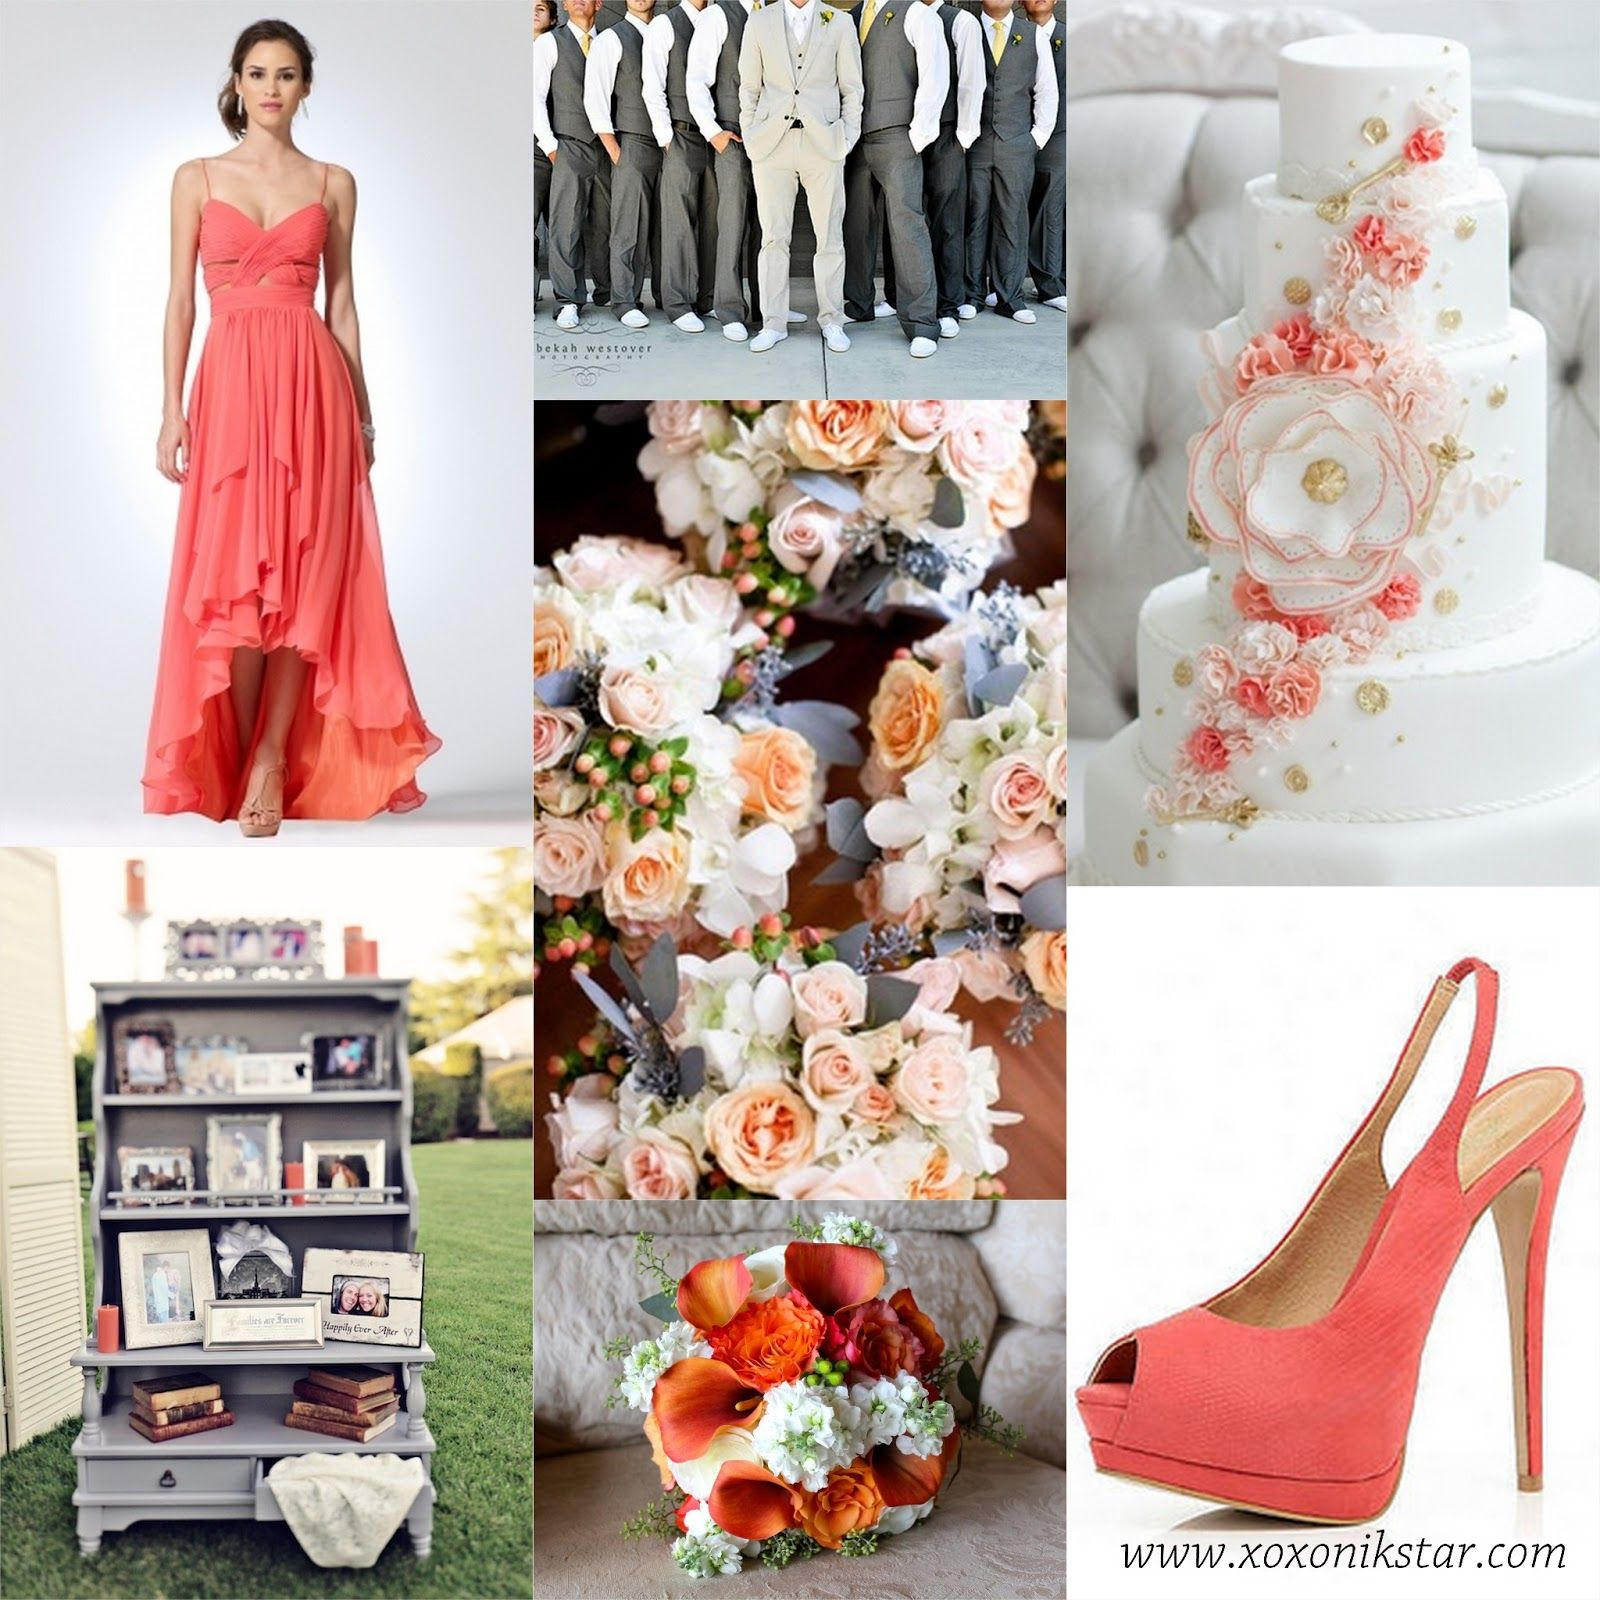 Grey Wedding Ideas: Coral And Gray Wedding Colors And Inspiration. Perfect For